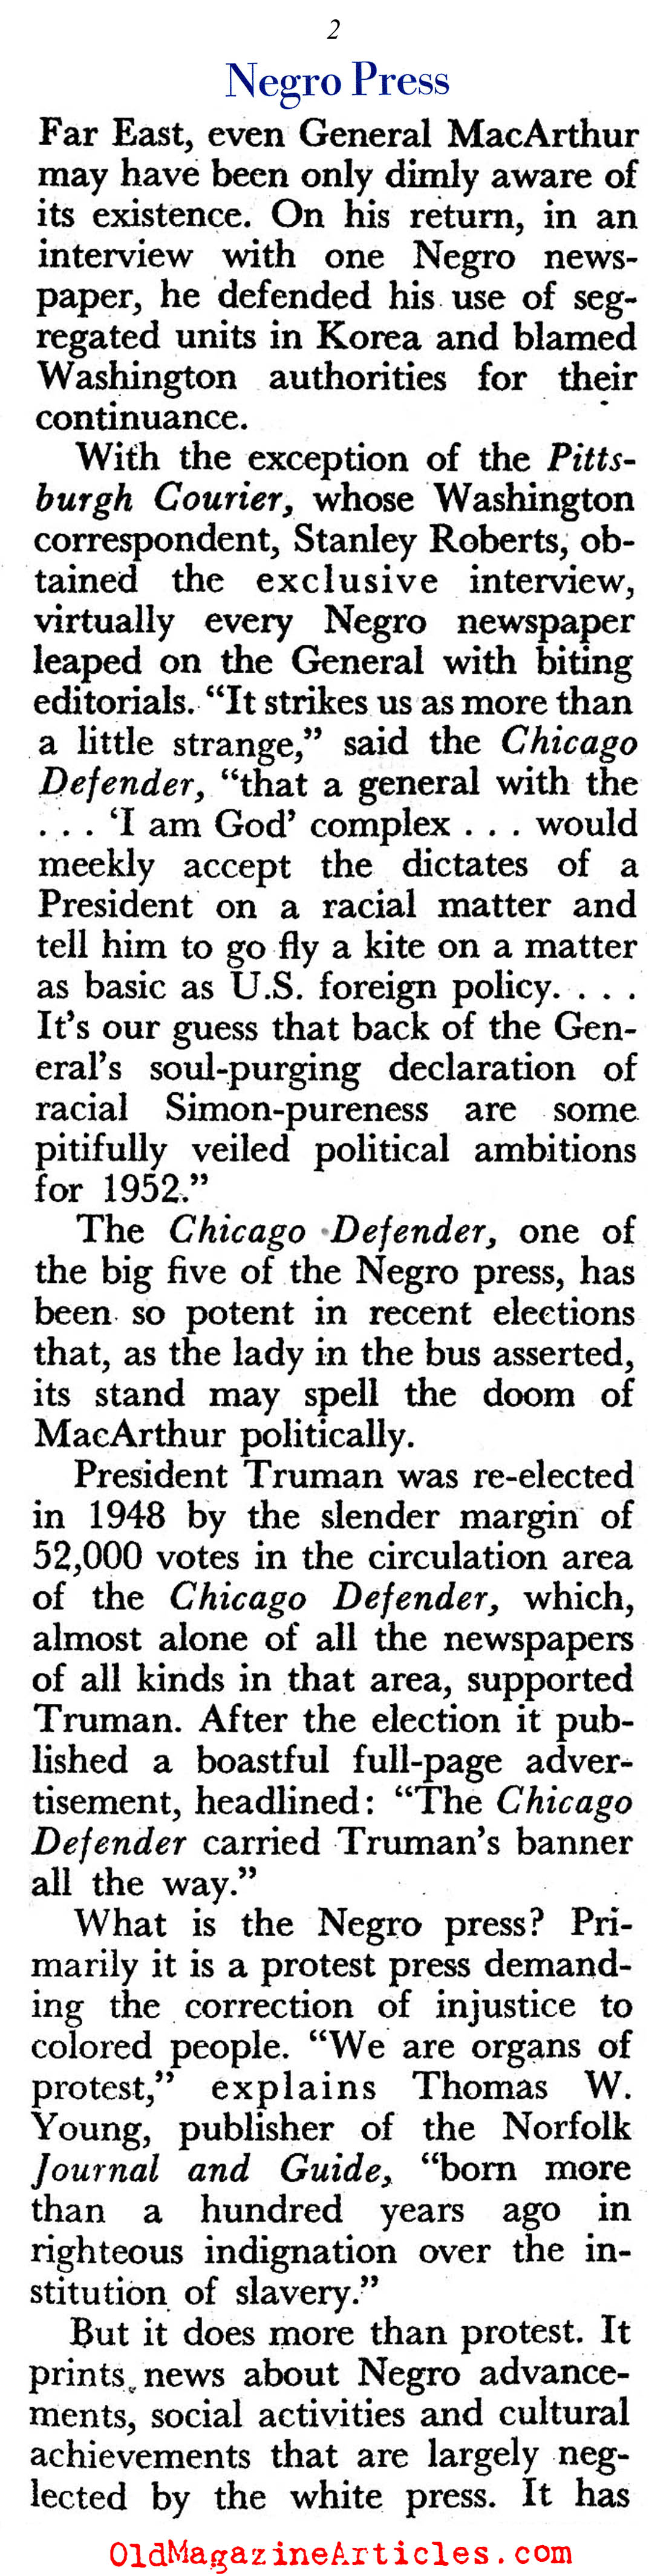 The Power of the African-American Press (Pageant Magazine, 1952)